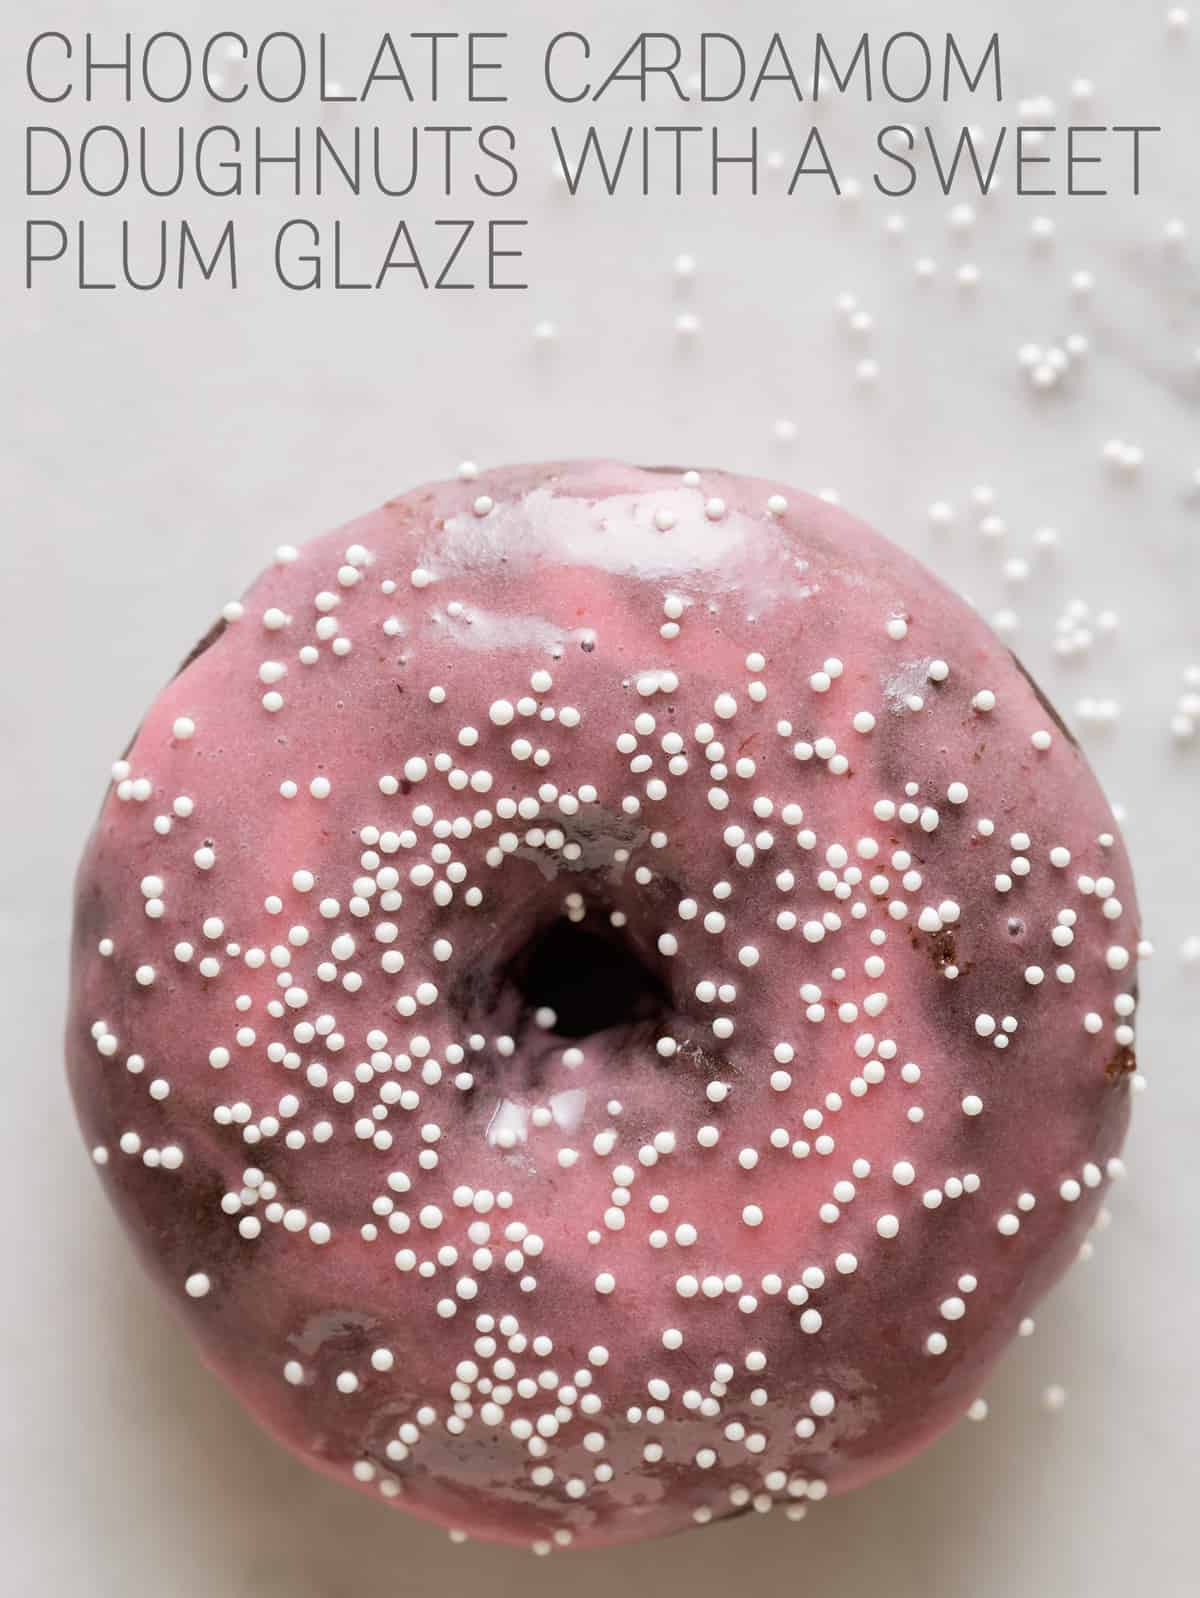 Chocolate Cardamom Doughnuts with a Sweet Plum Glaze